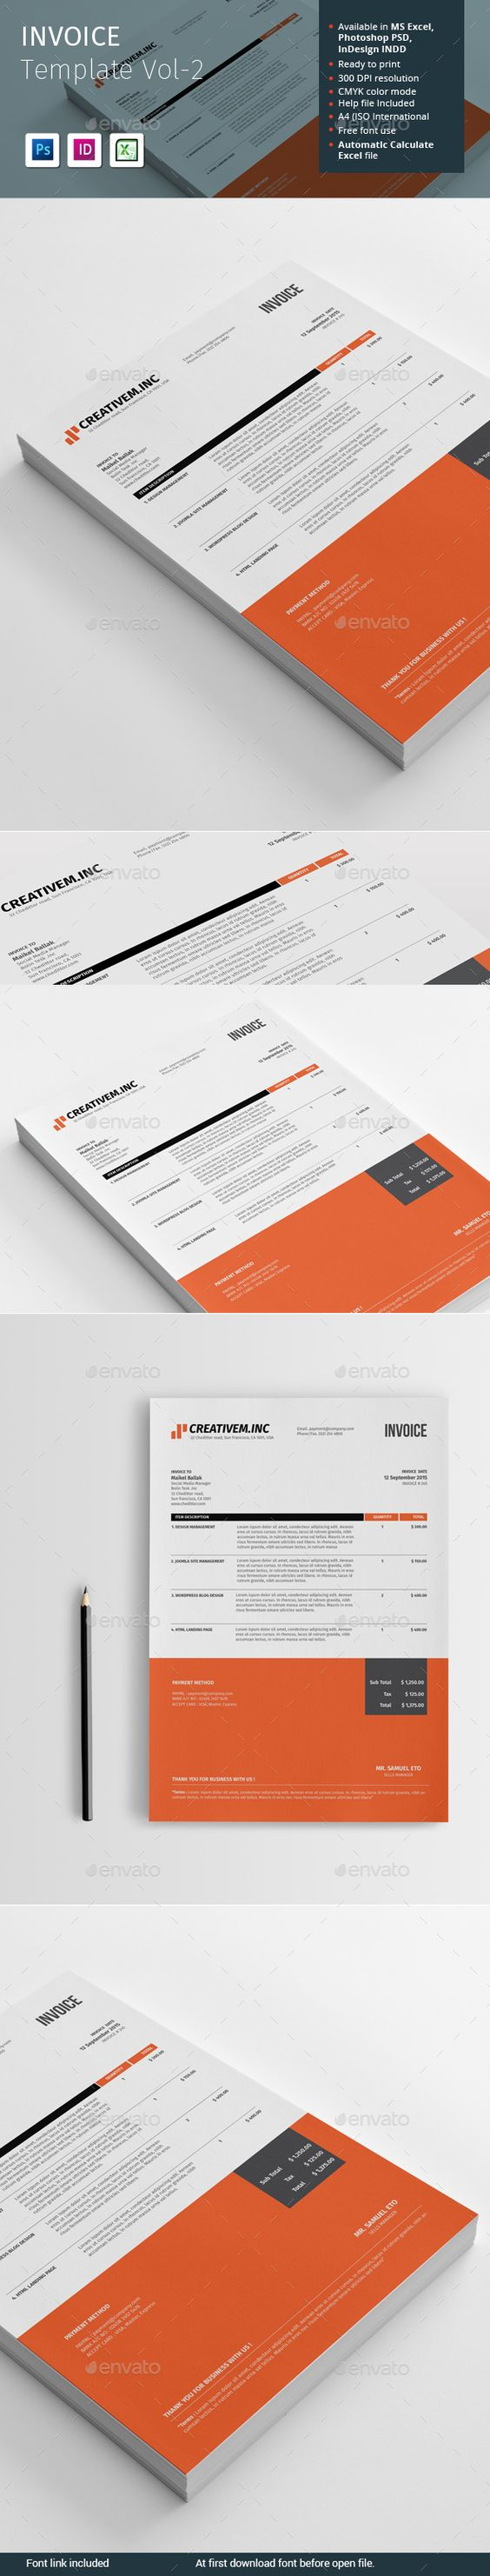 invoice template ms excel, psd, indesign indd | proposal & invoice, Invoice templates